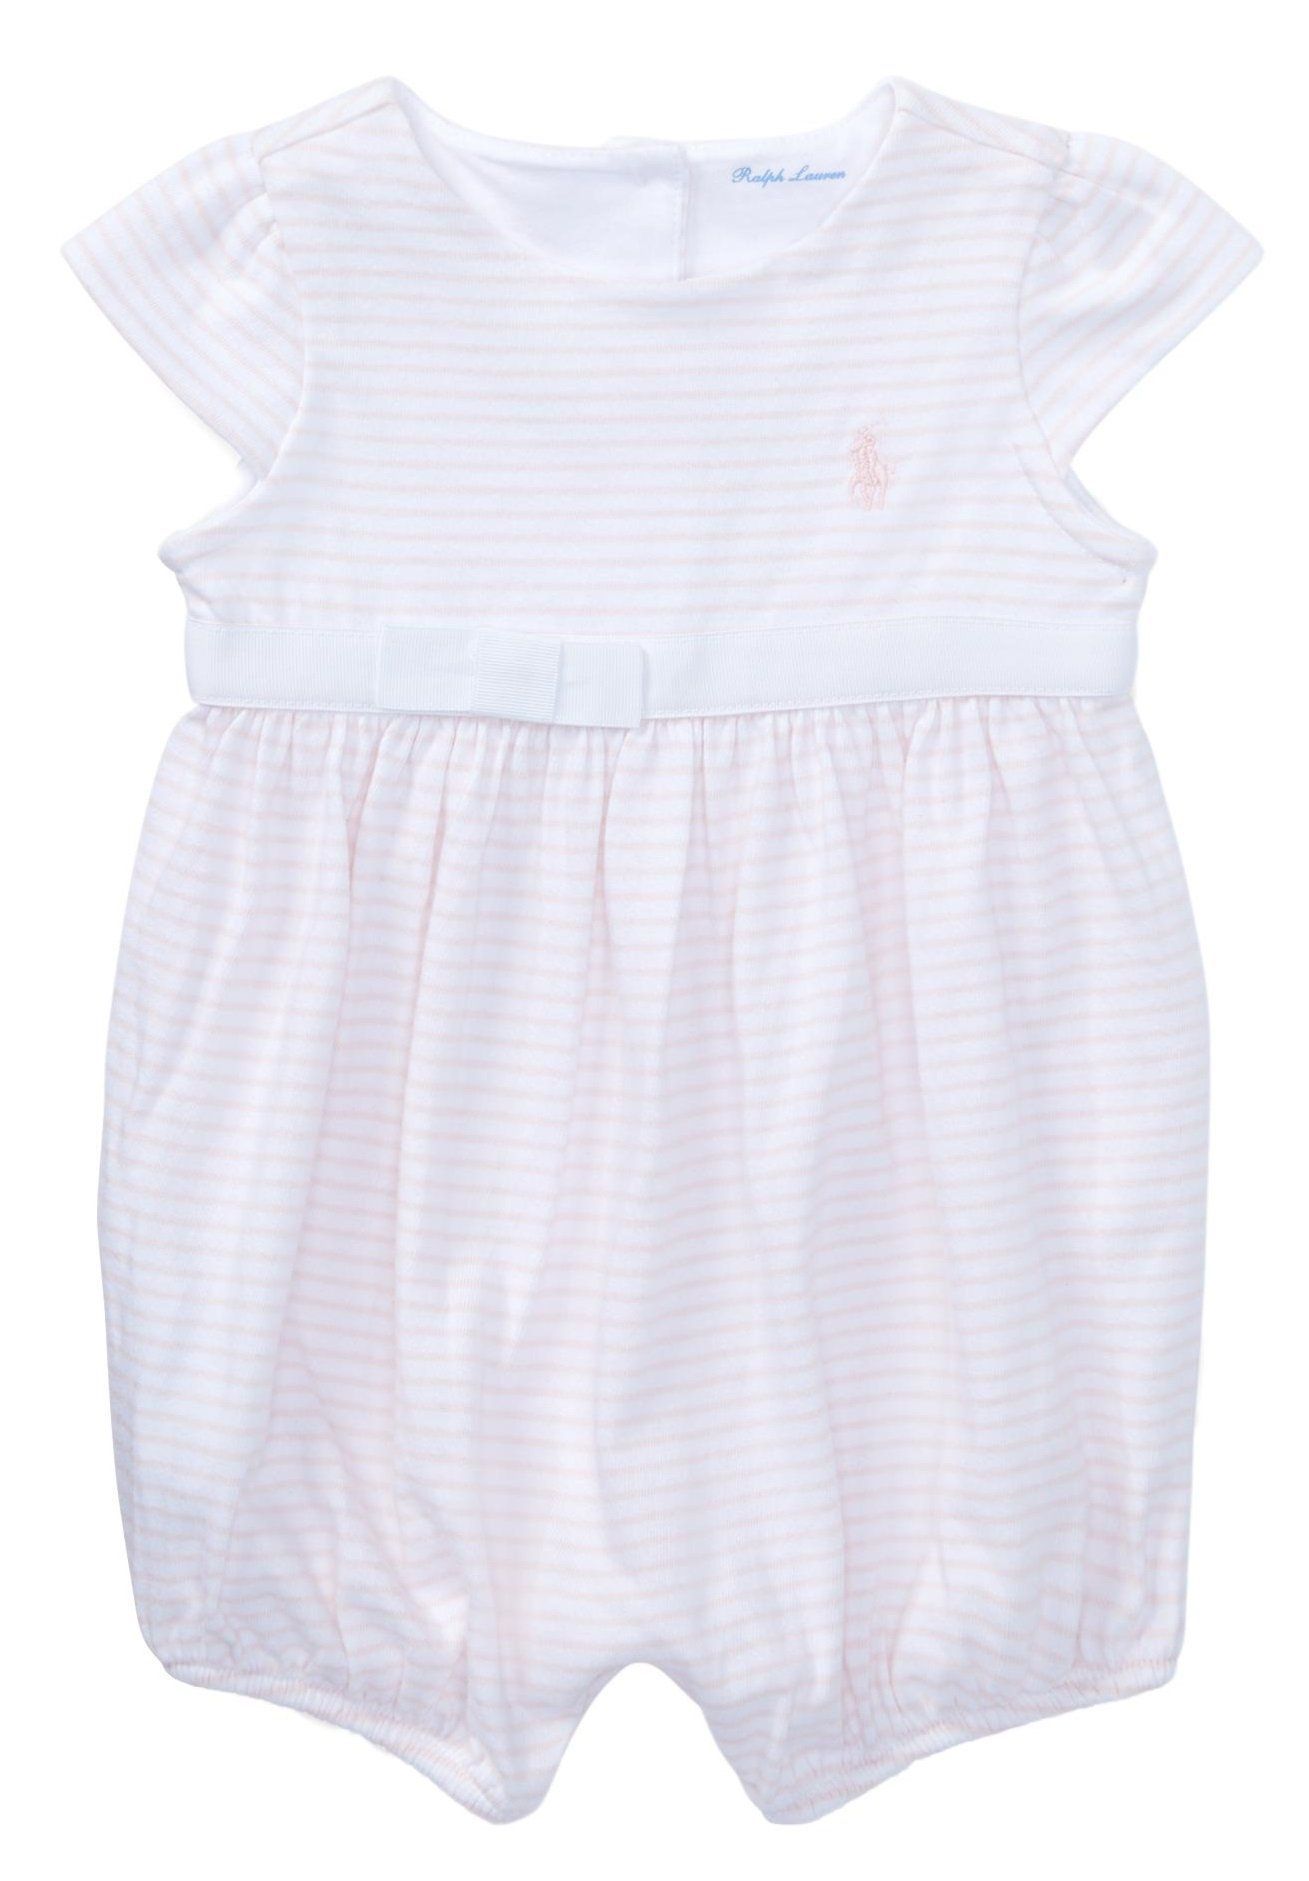 51db299b5b RALPH LAUREN Baby Girl Striped Cotton Jersey Romper 12 Months ...